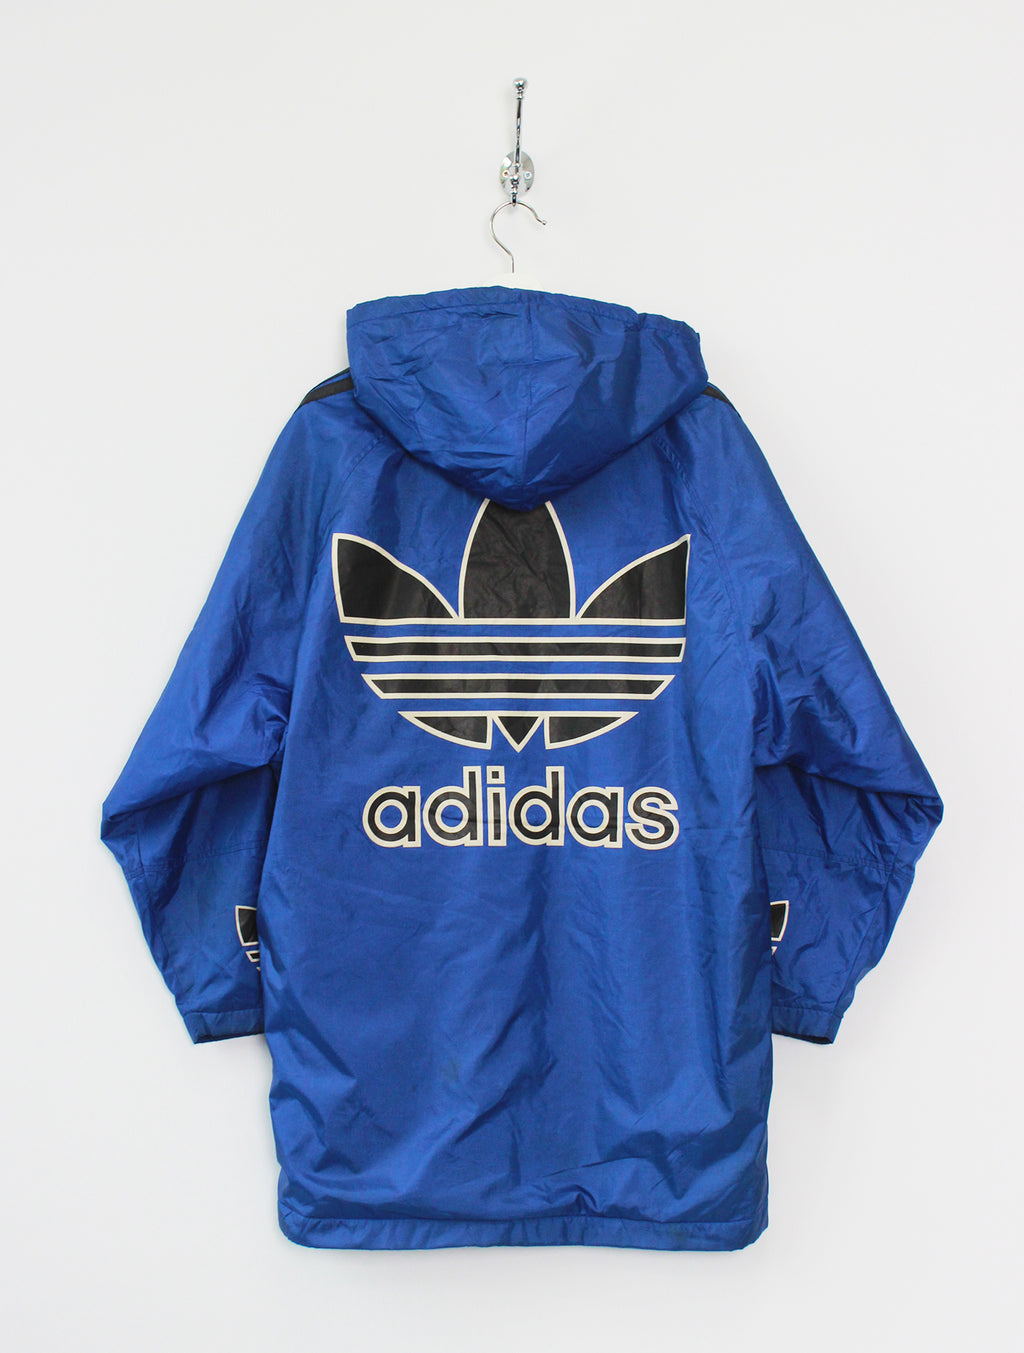 Adidas Sherpa Lined Coat (L)